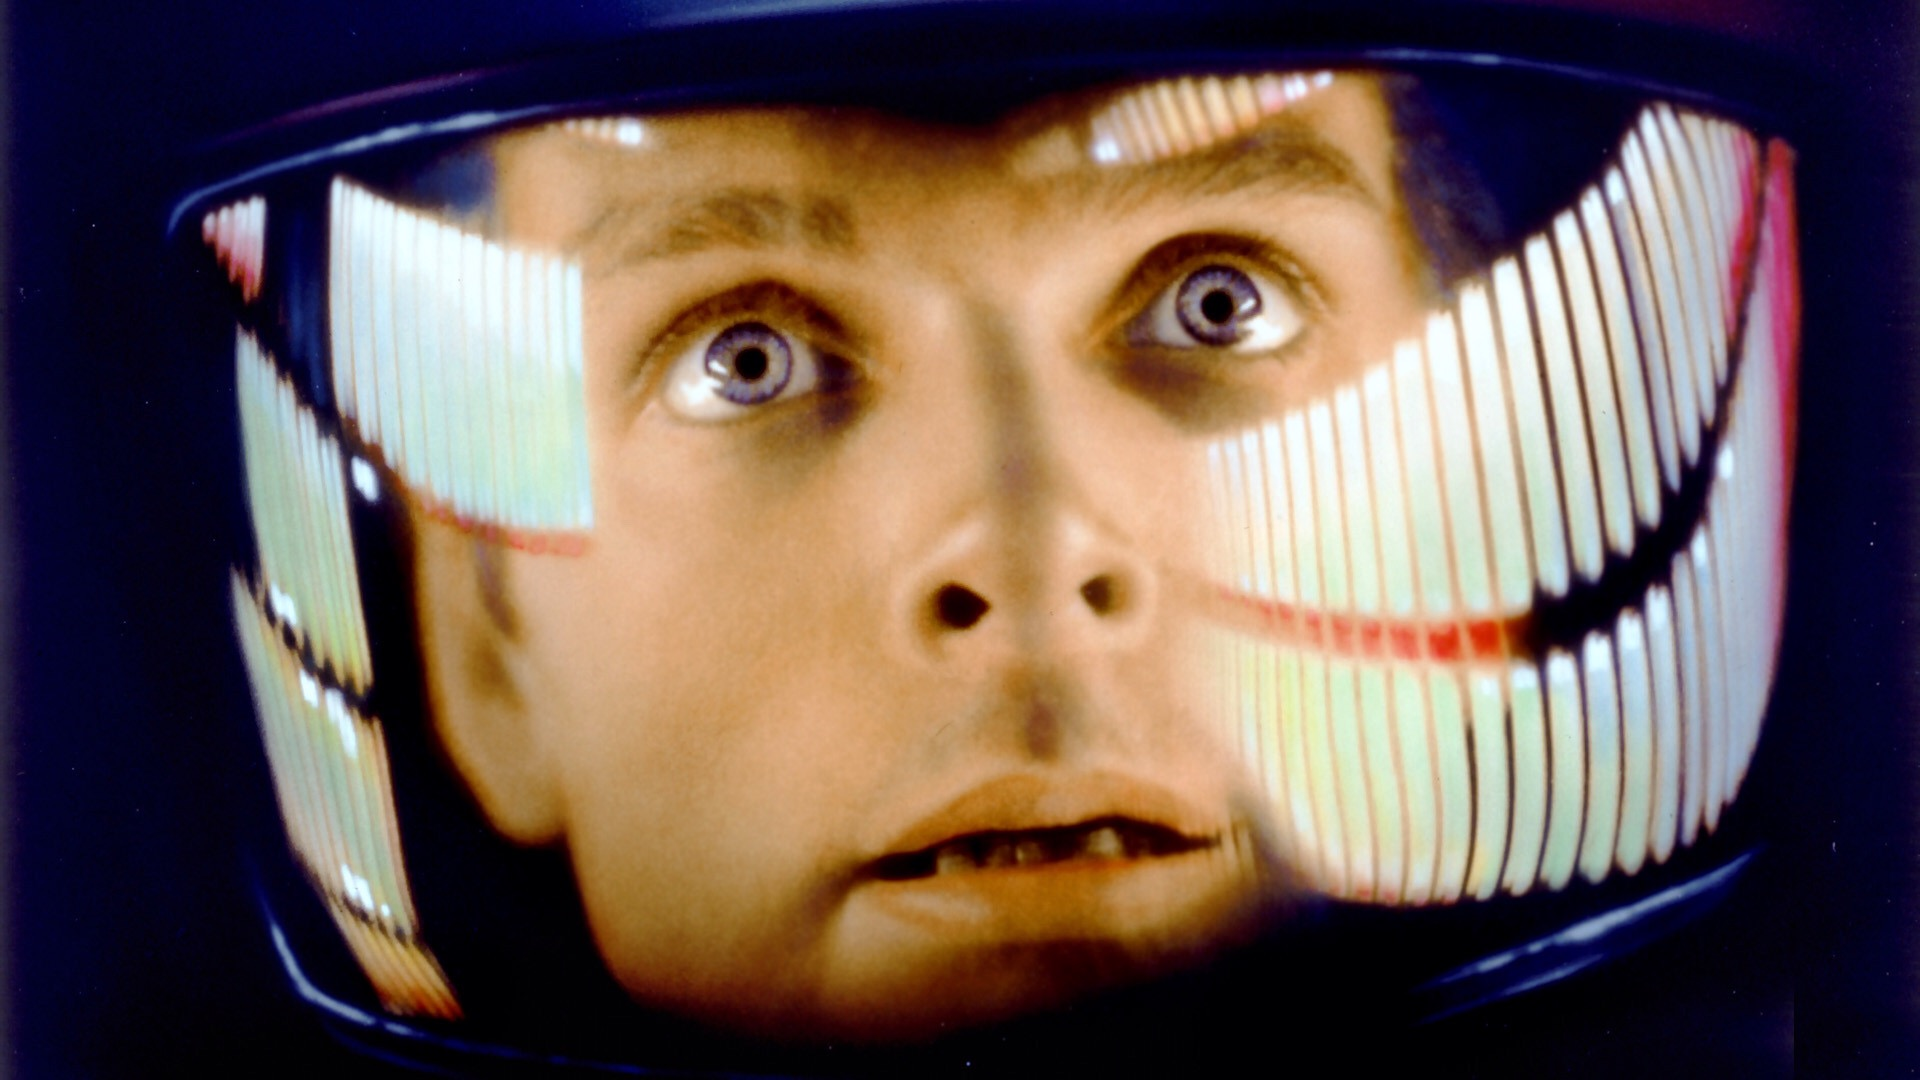 Episode 114: 2001: A Space Odyssey